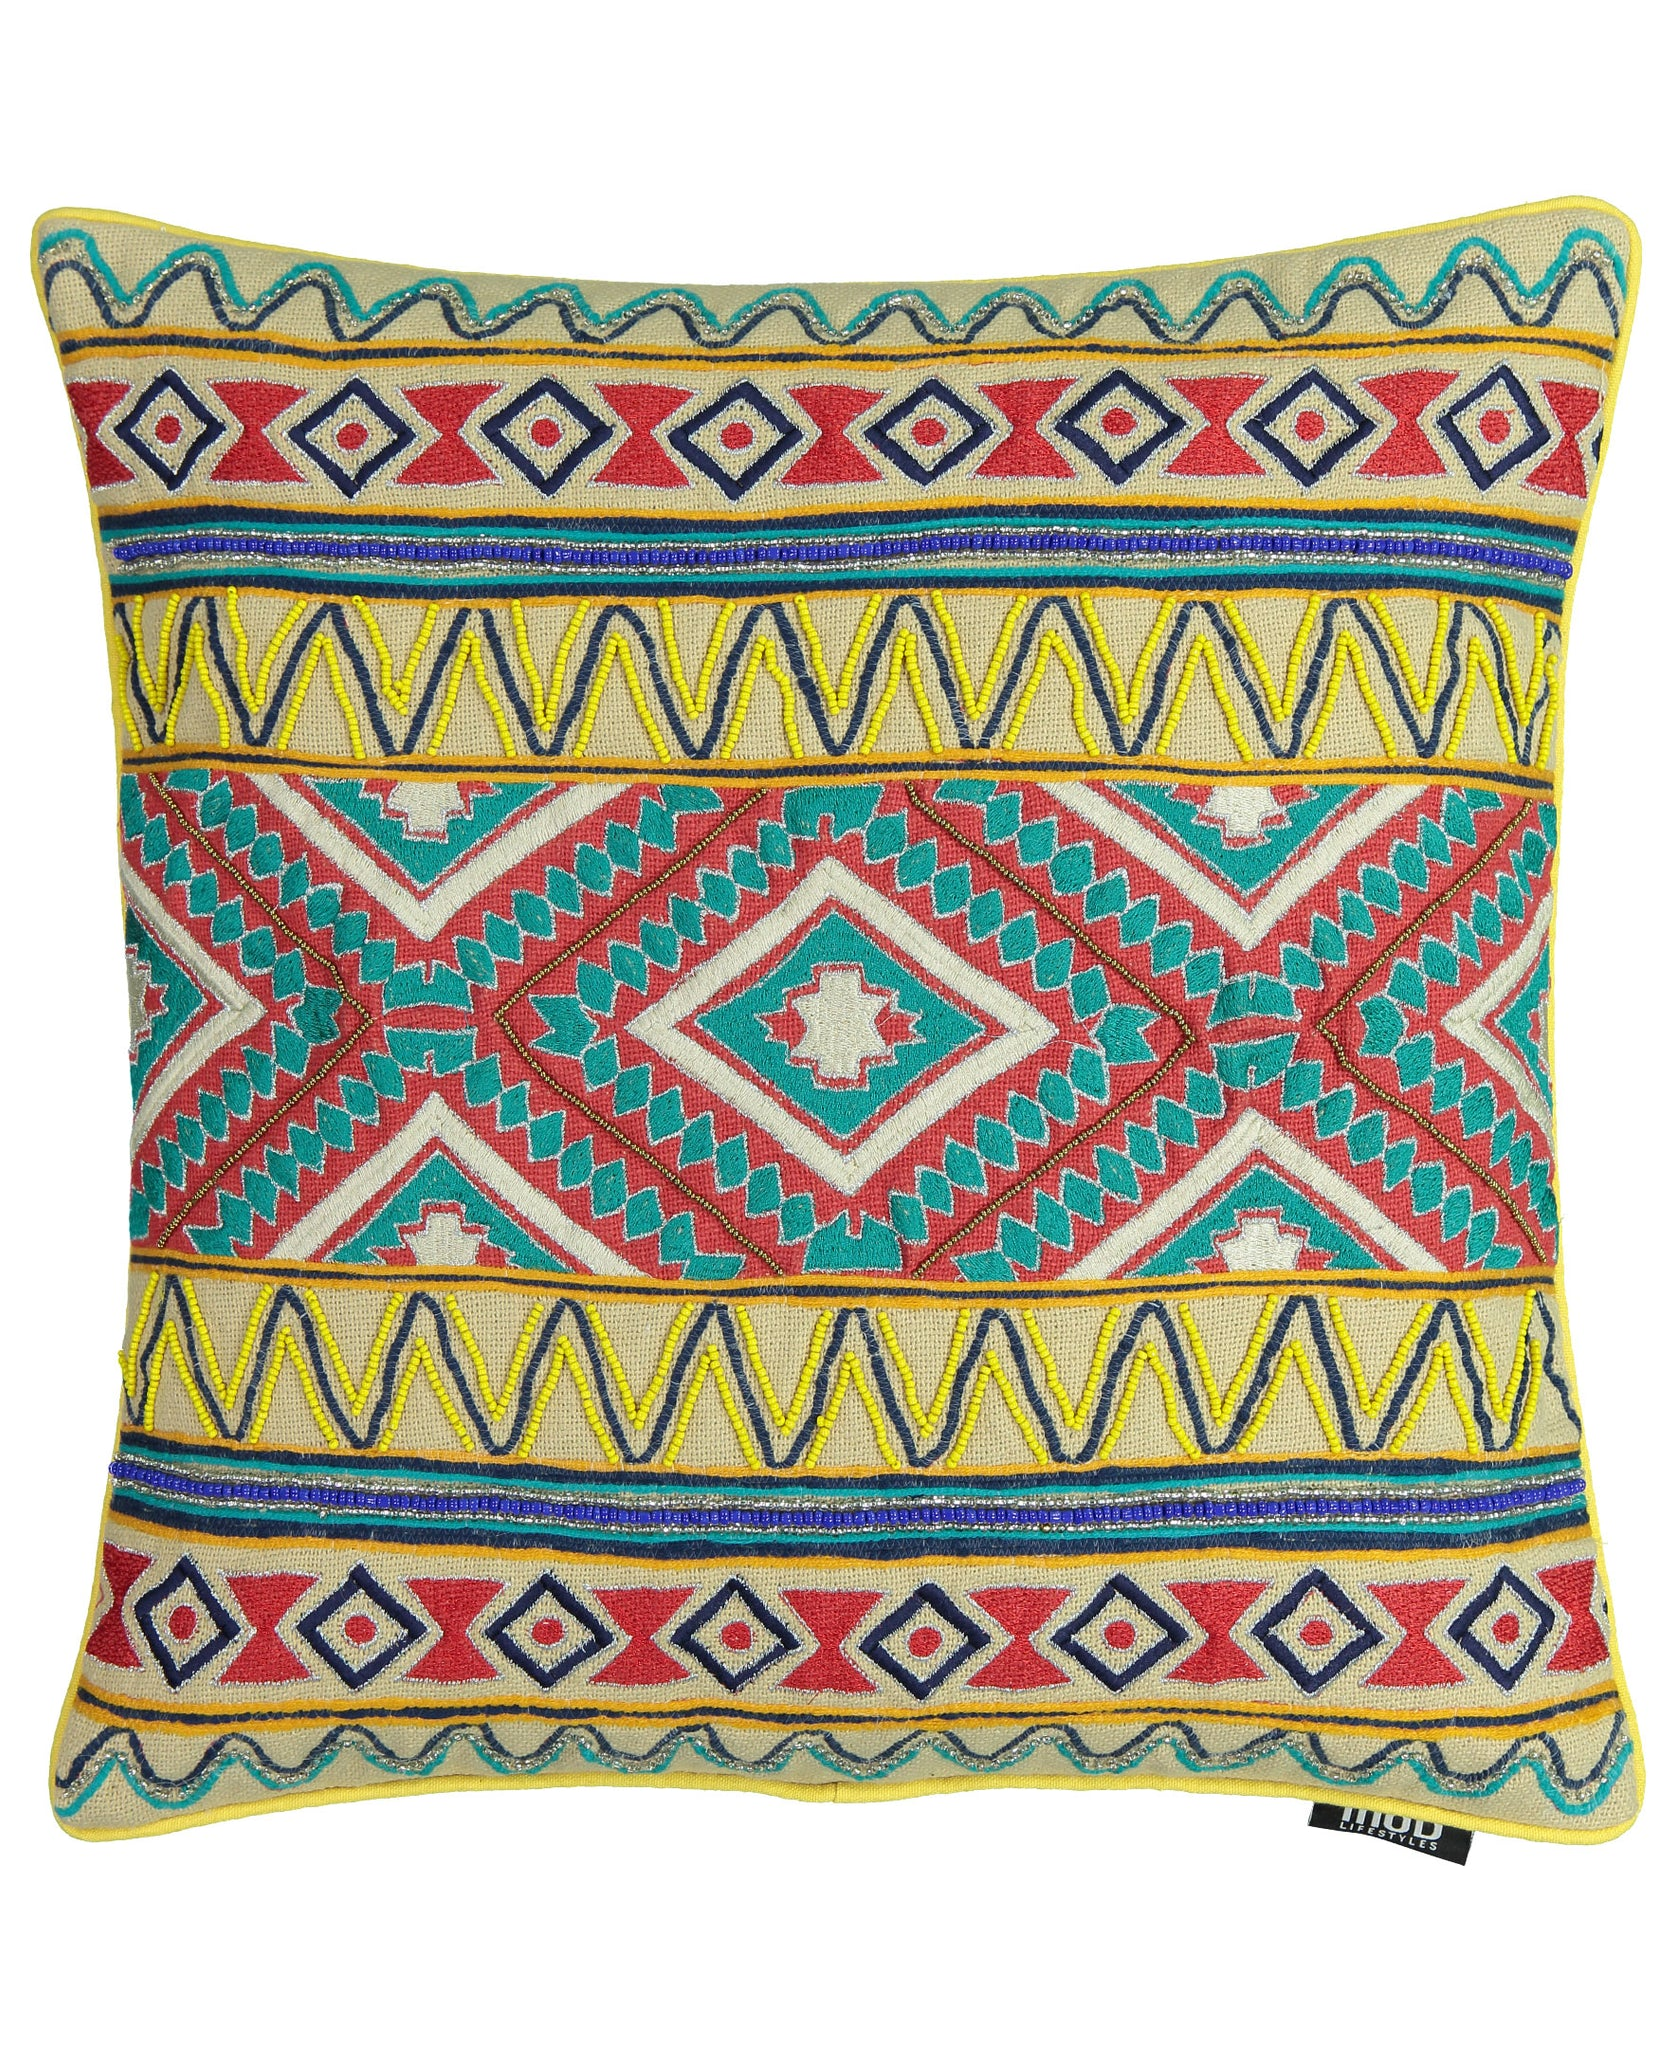 "Tribal Beads Embroidery Decorative Pillow, 20"" X 20"" Mod Lifestyles"